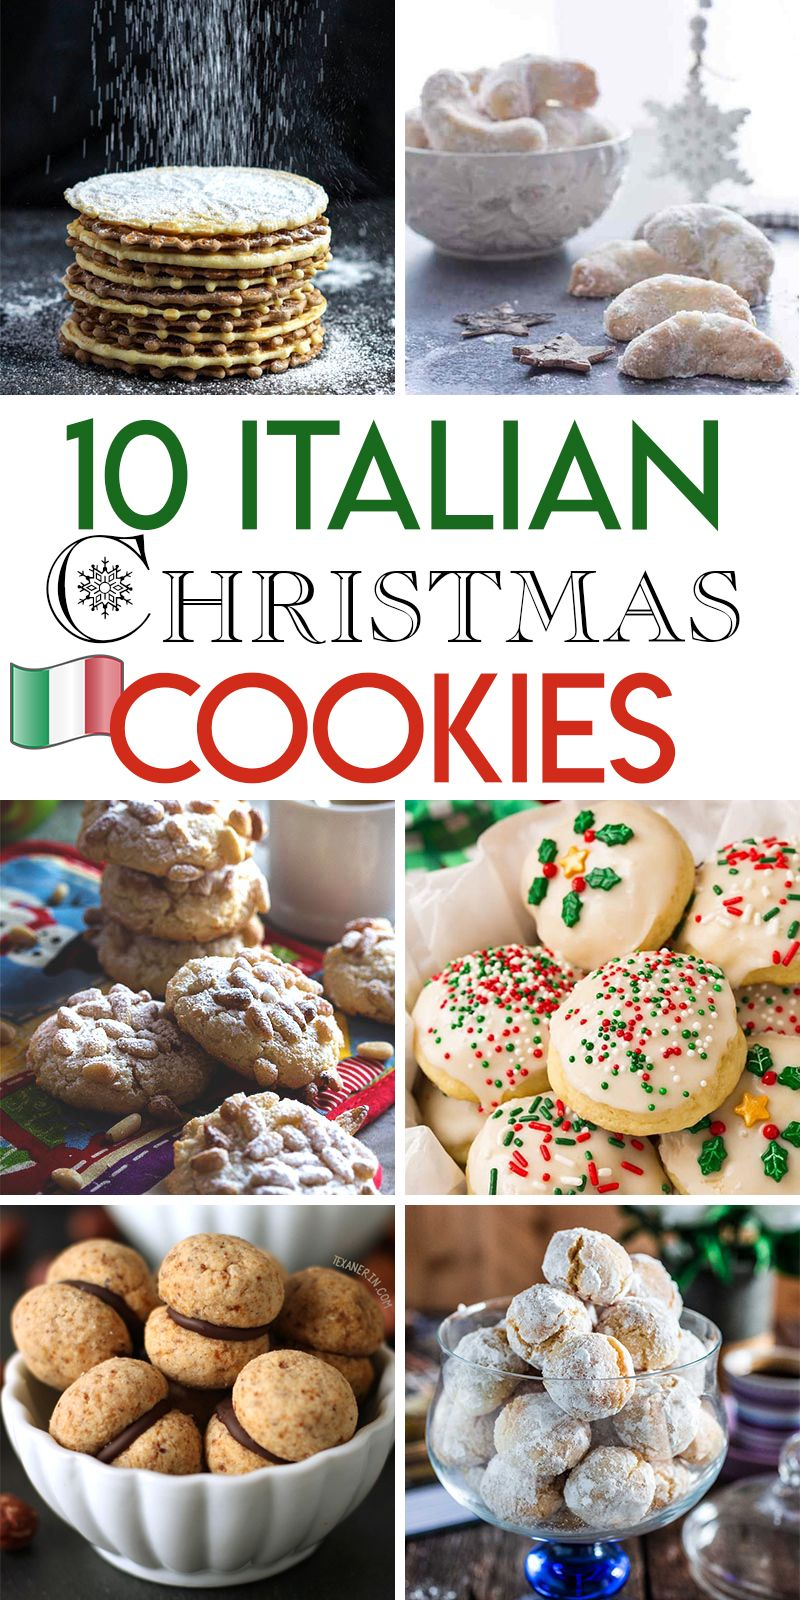 Christmas Cookie Recipes 2019.10 Italian Christmas Cookie Recipes Italian Cookie Recipes